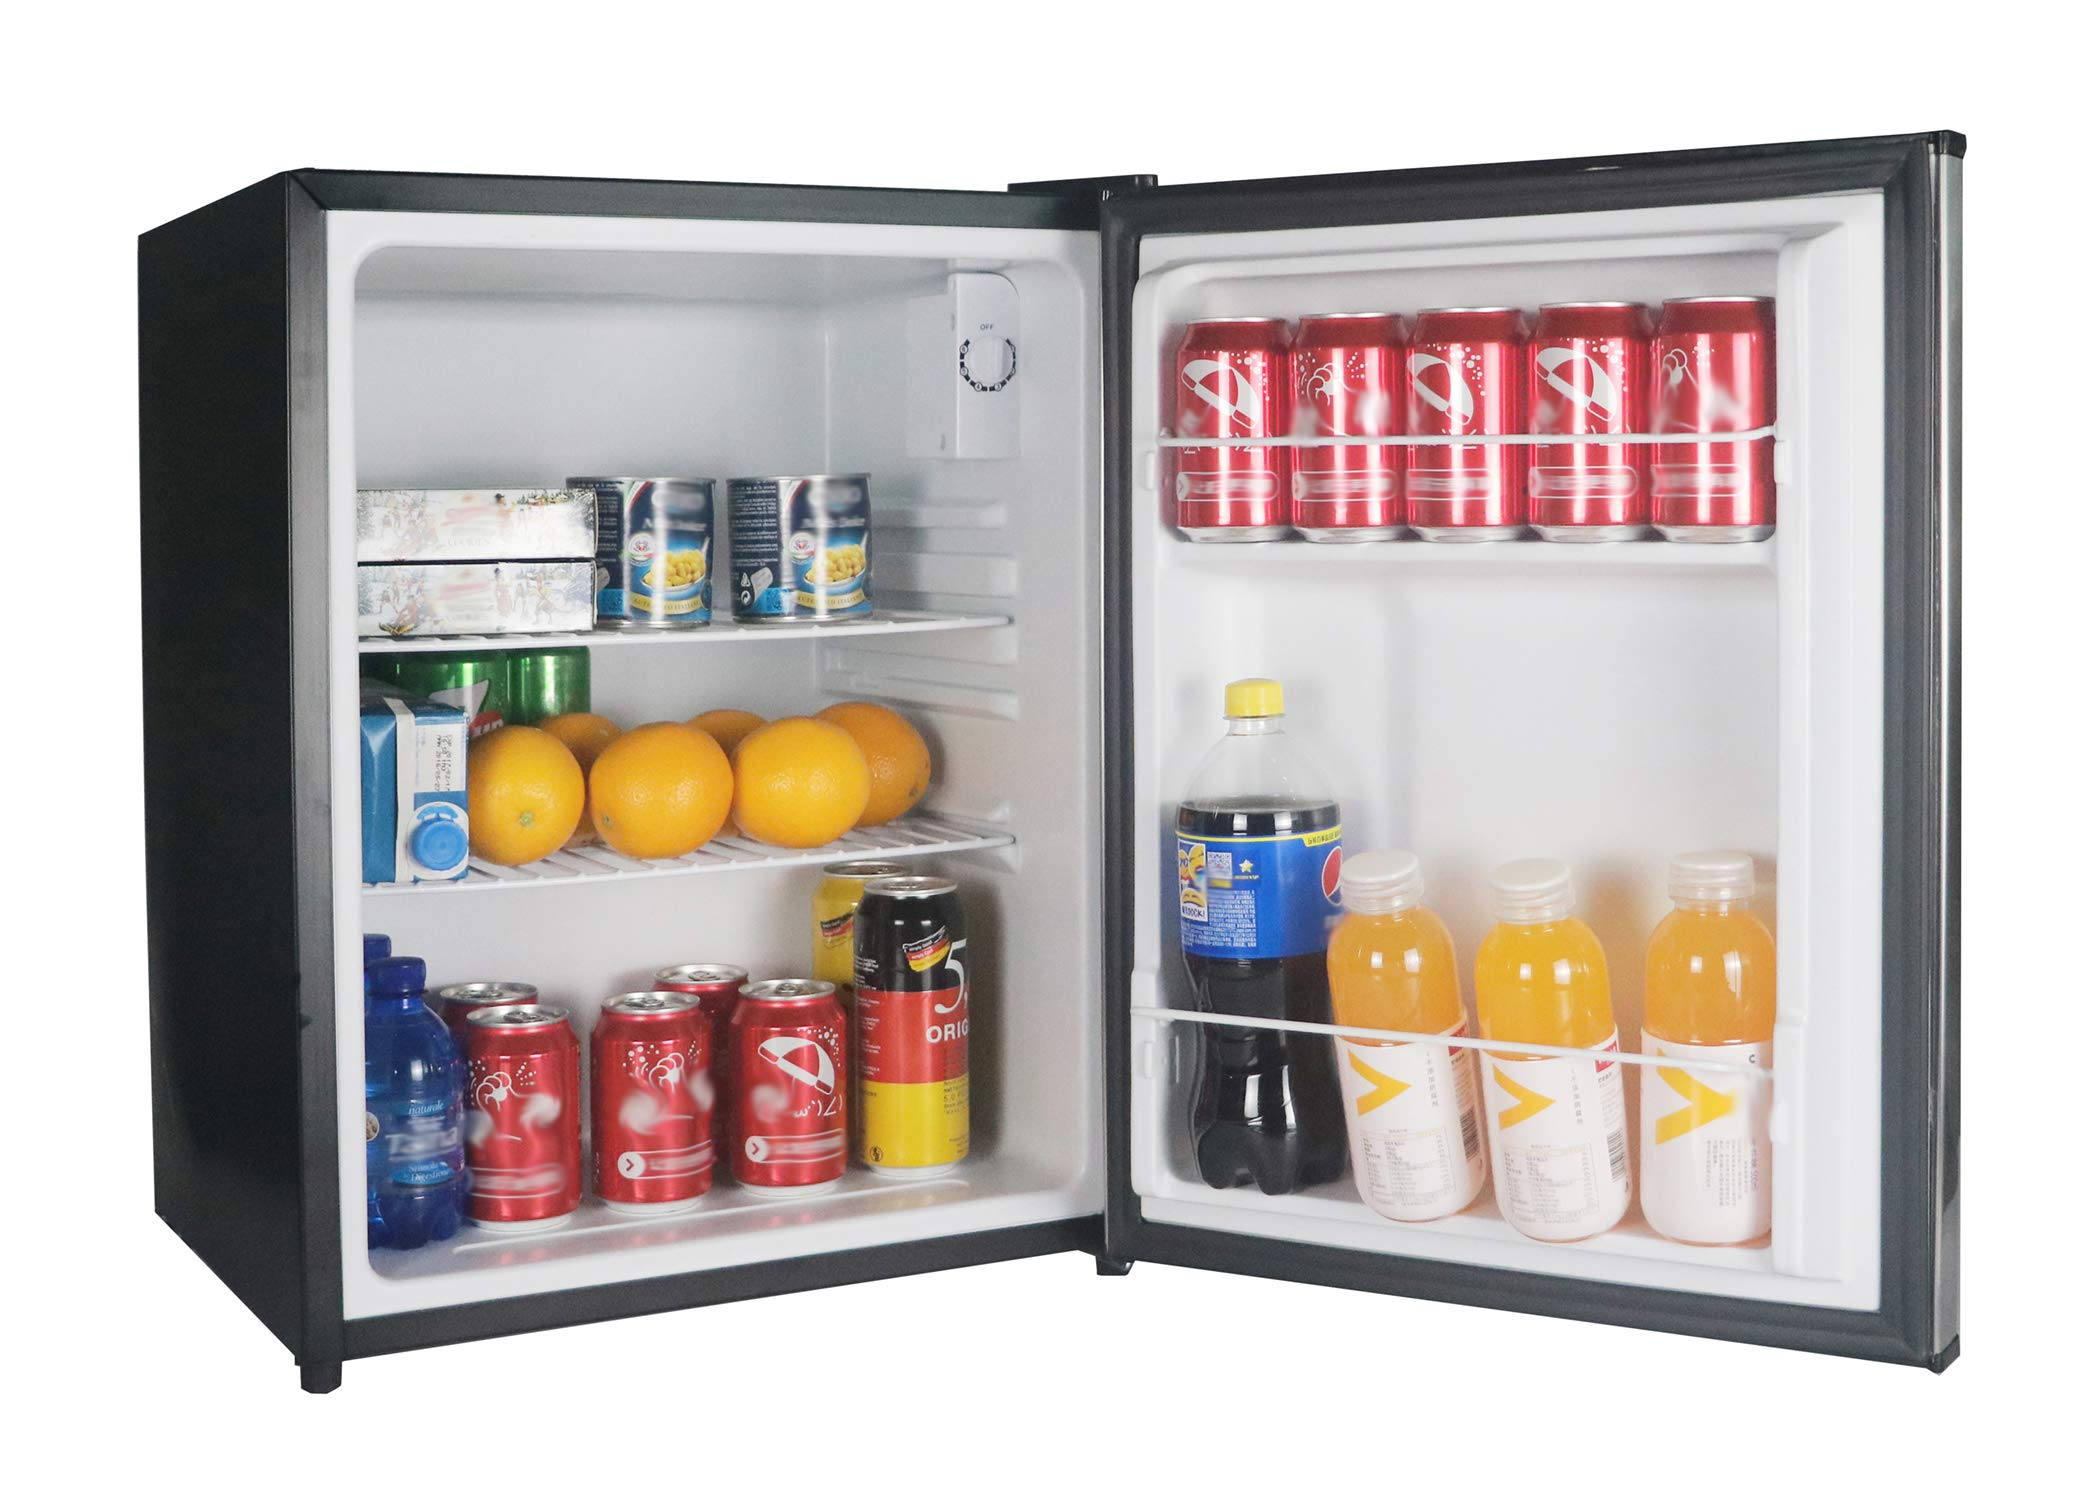 Magic Chef MCAR240SE2 Energy Star Stainless Steel Door 2.4 Cu. Ft. Mini All-Refrigerator by Magic Chef (Image #5)